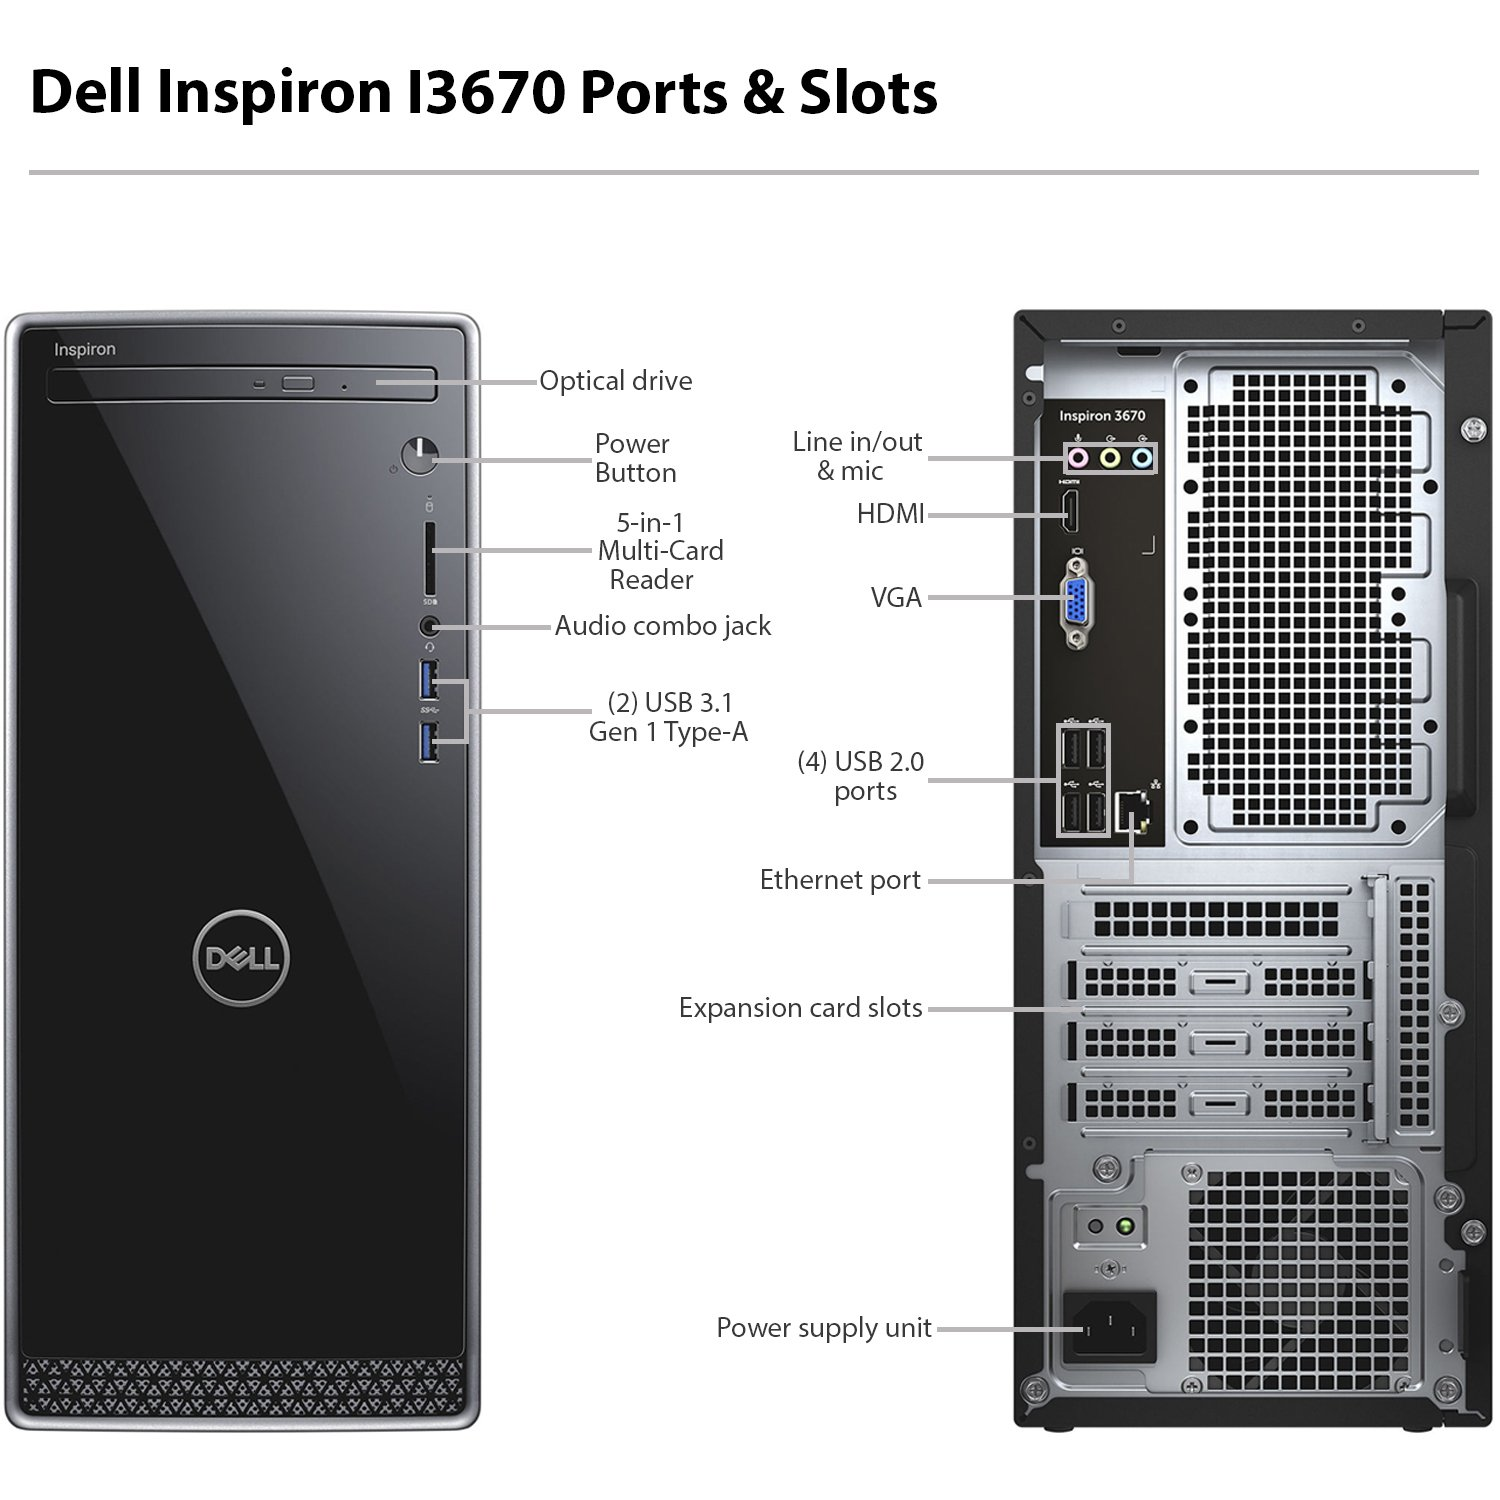 Dell Inspiron i3670 Desktop - 8th Gen Intel Core i7-8700 6-Core up to 4 60  GHz, 16GB DDR4 Memory, 2TB SATA Hard Drive, 2GB Nvidia GeForce GT 1030, DVD